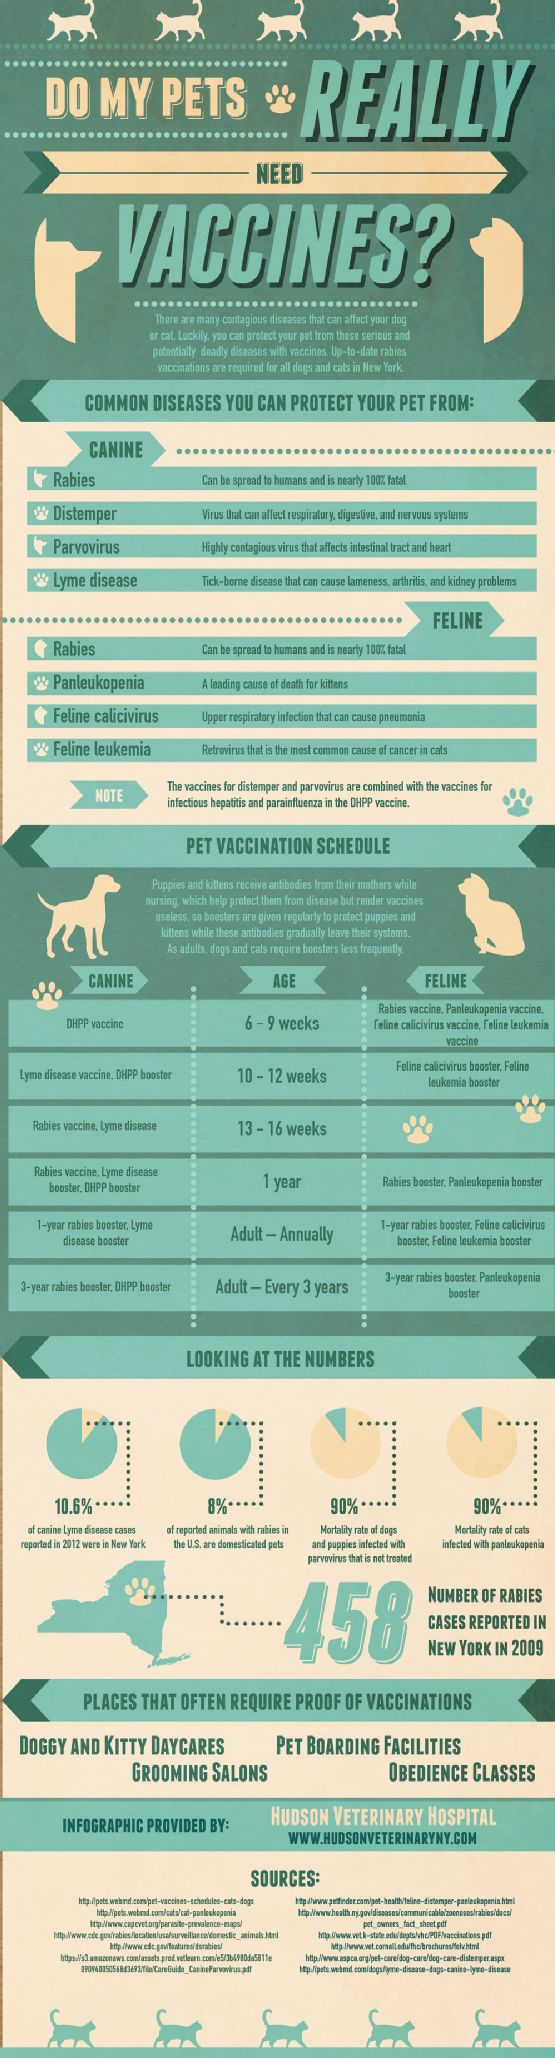 Do you know what vaccinations your pet needs? What about when he needs them? This infographic contains a vaccine schedule for both dogs and cats, making it easy for pet owners to keep their pets happy and healthy for years to come!